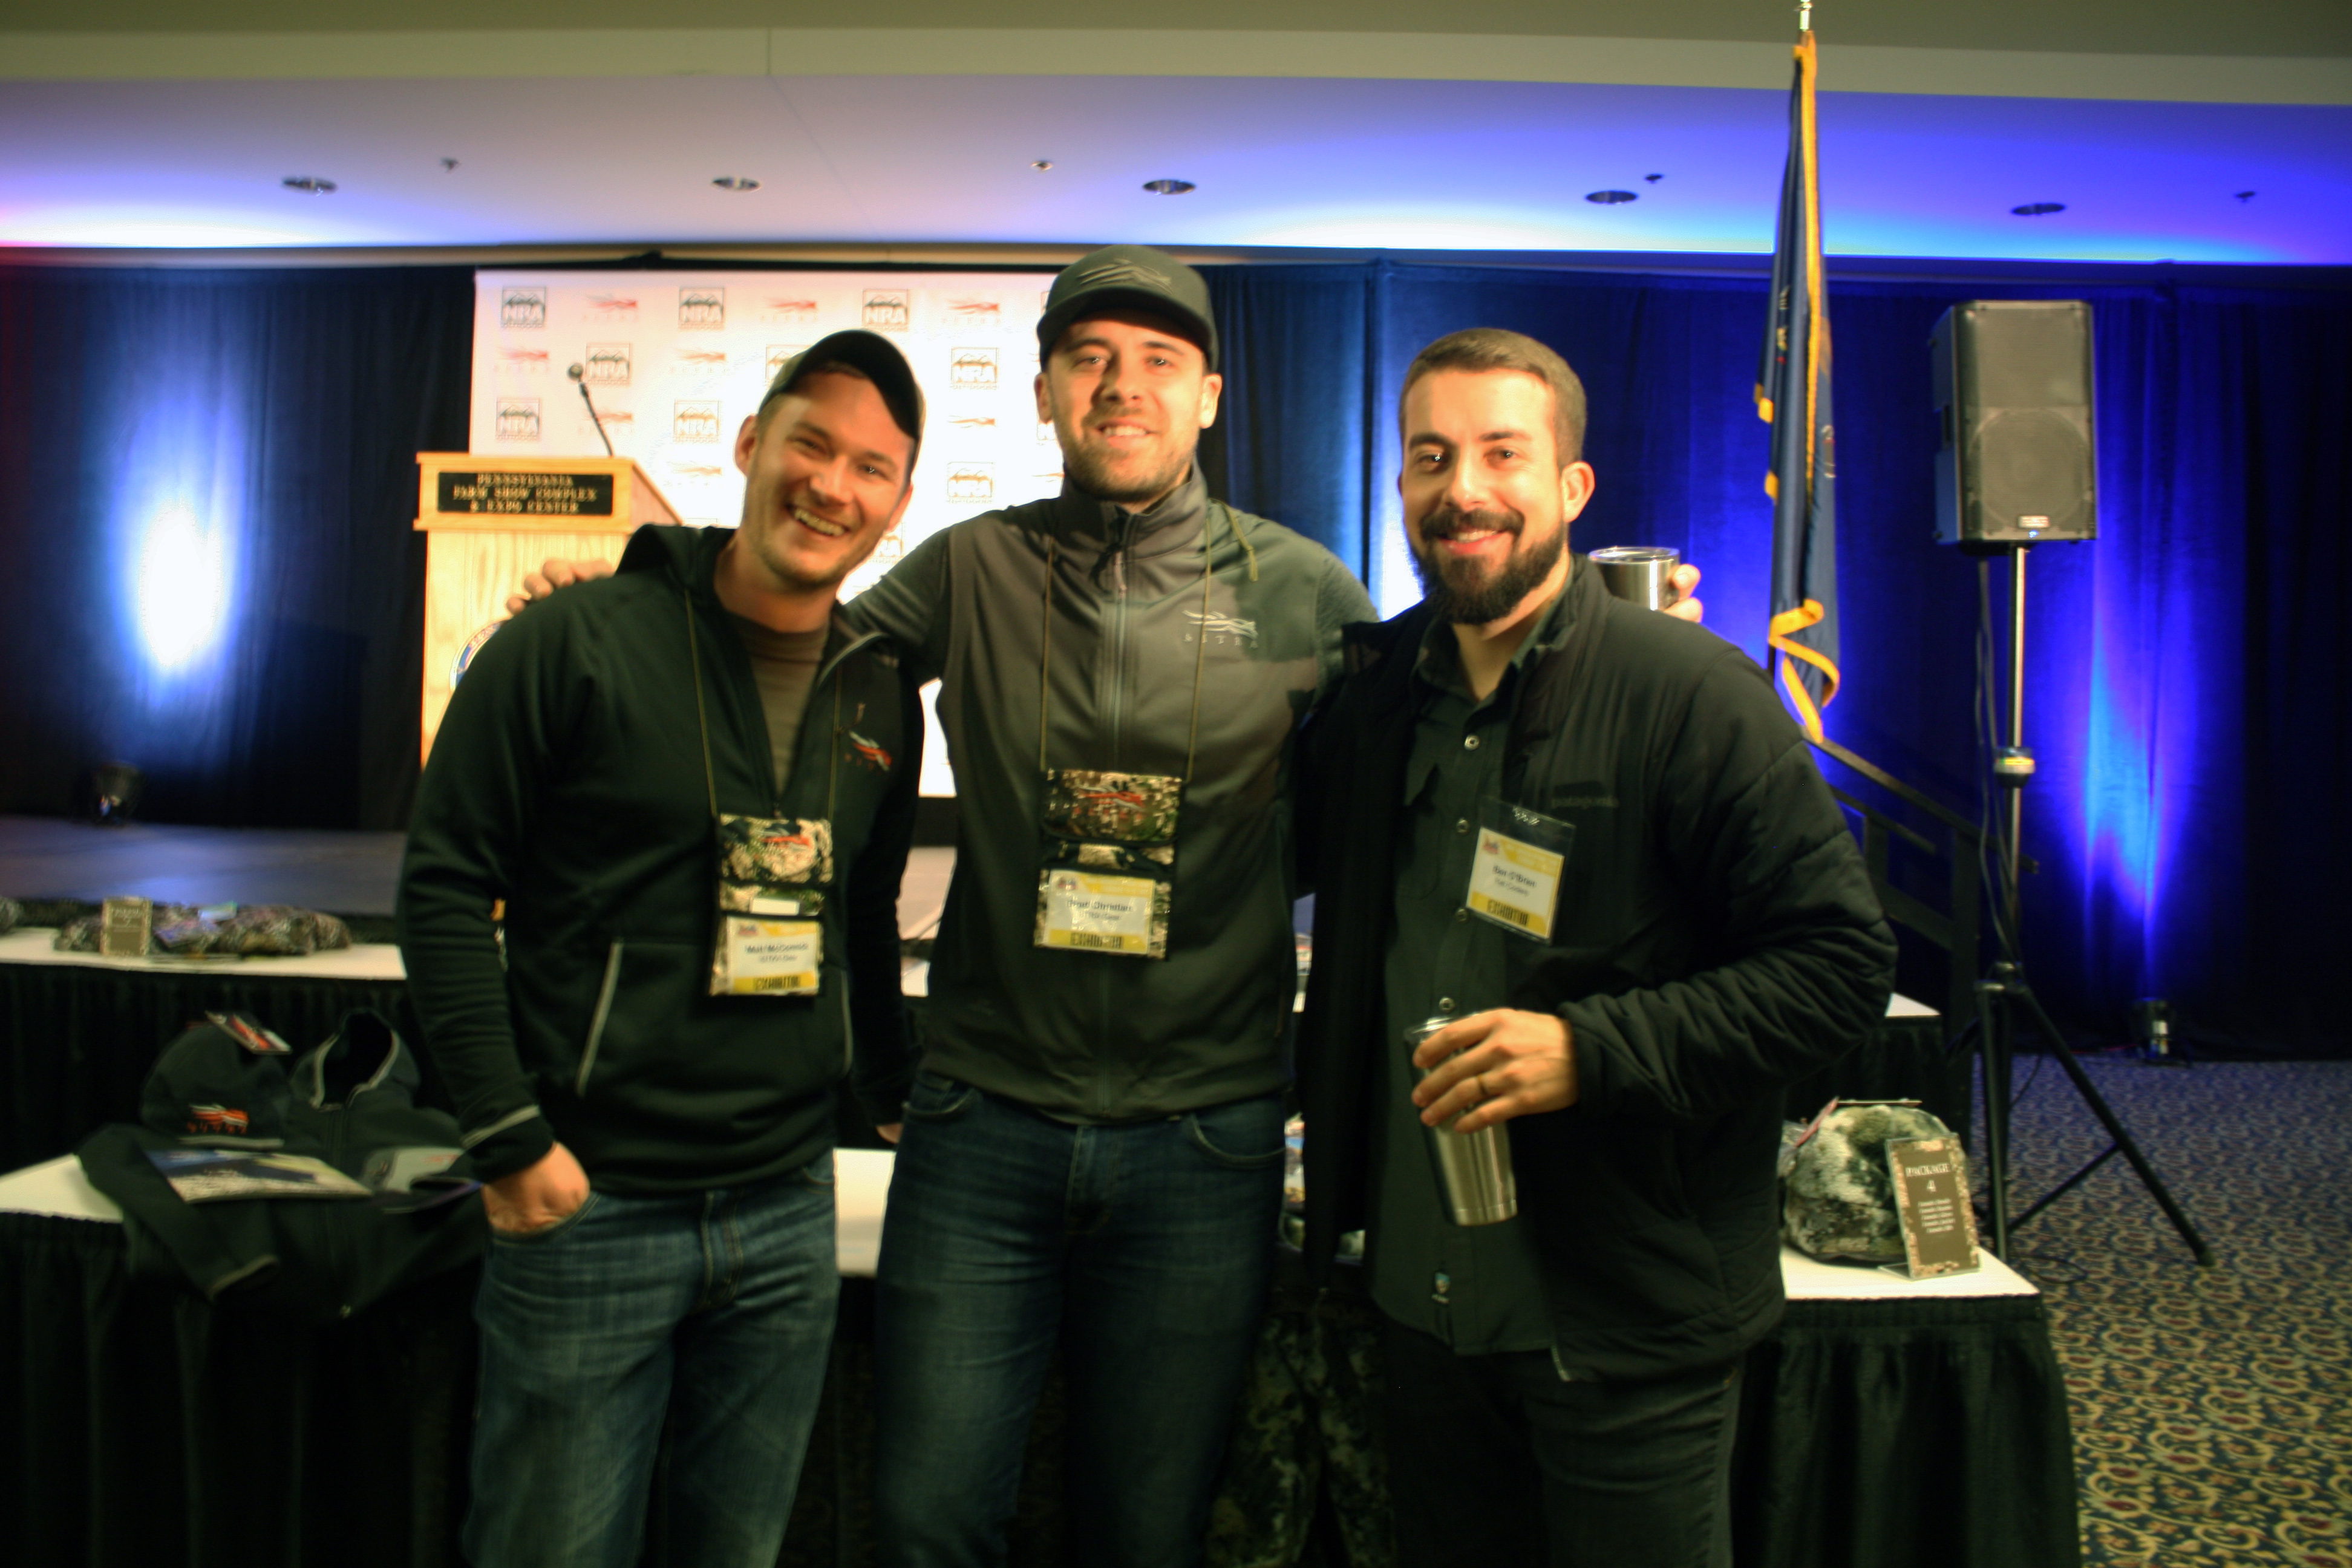 Bringing Together the World's Outfitters at the Great American Outdoor Show